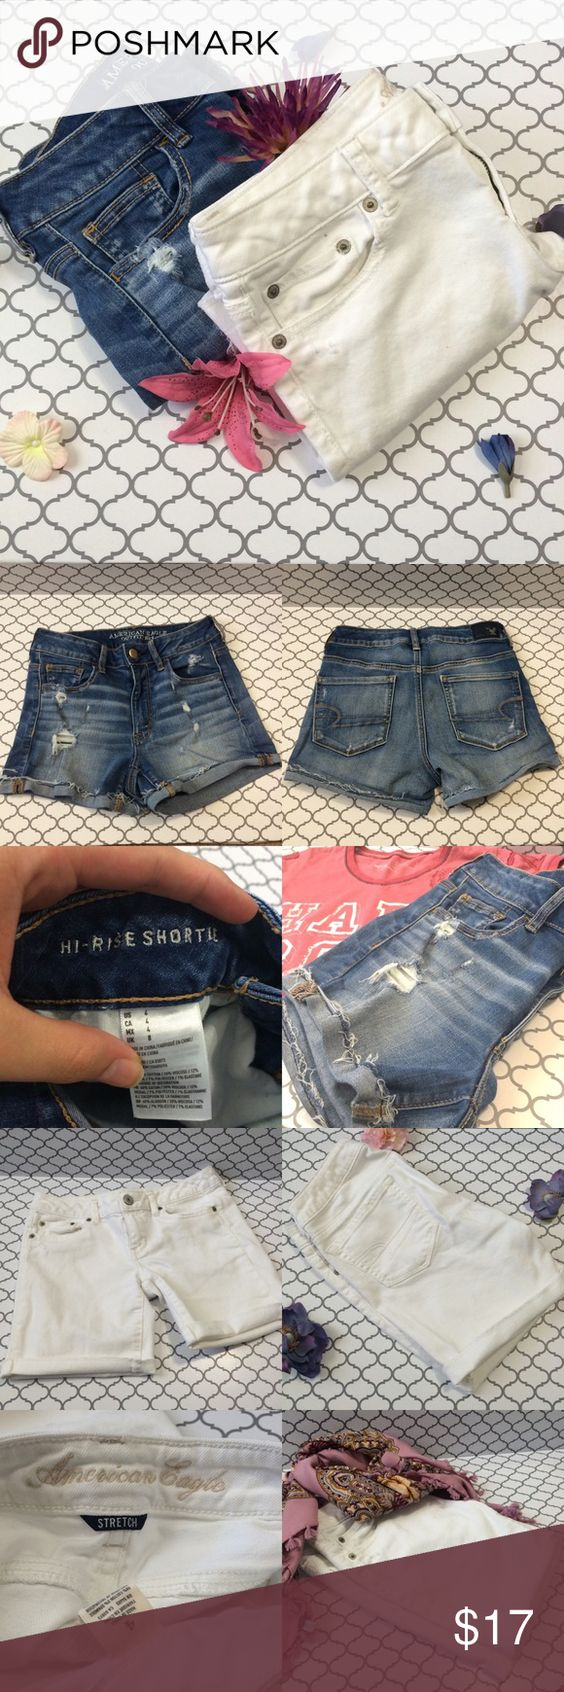 American Eagle shorts bundle One pair of white Bermuda shorts size 4 and one pair of hi rise shortie shorts with some distressing, also size 4. Super cute shorts from AEO! No trades. No ️️. No Ⓜ️ercari. Ask me about bundles  Offers submitted via the offer button are always considered American Eagle Outfitters Shorts Jean Shorts